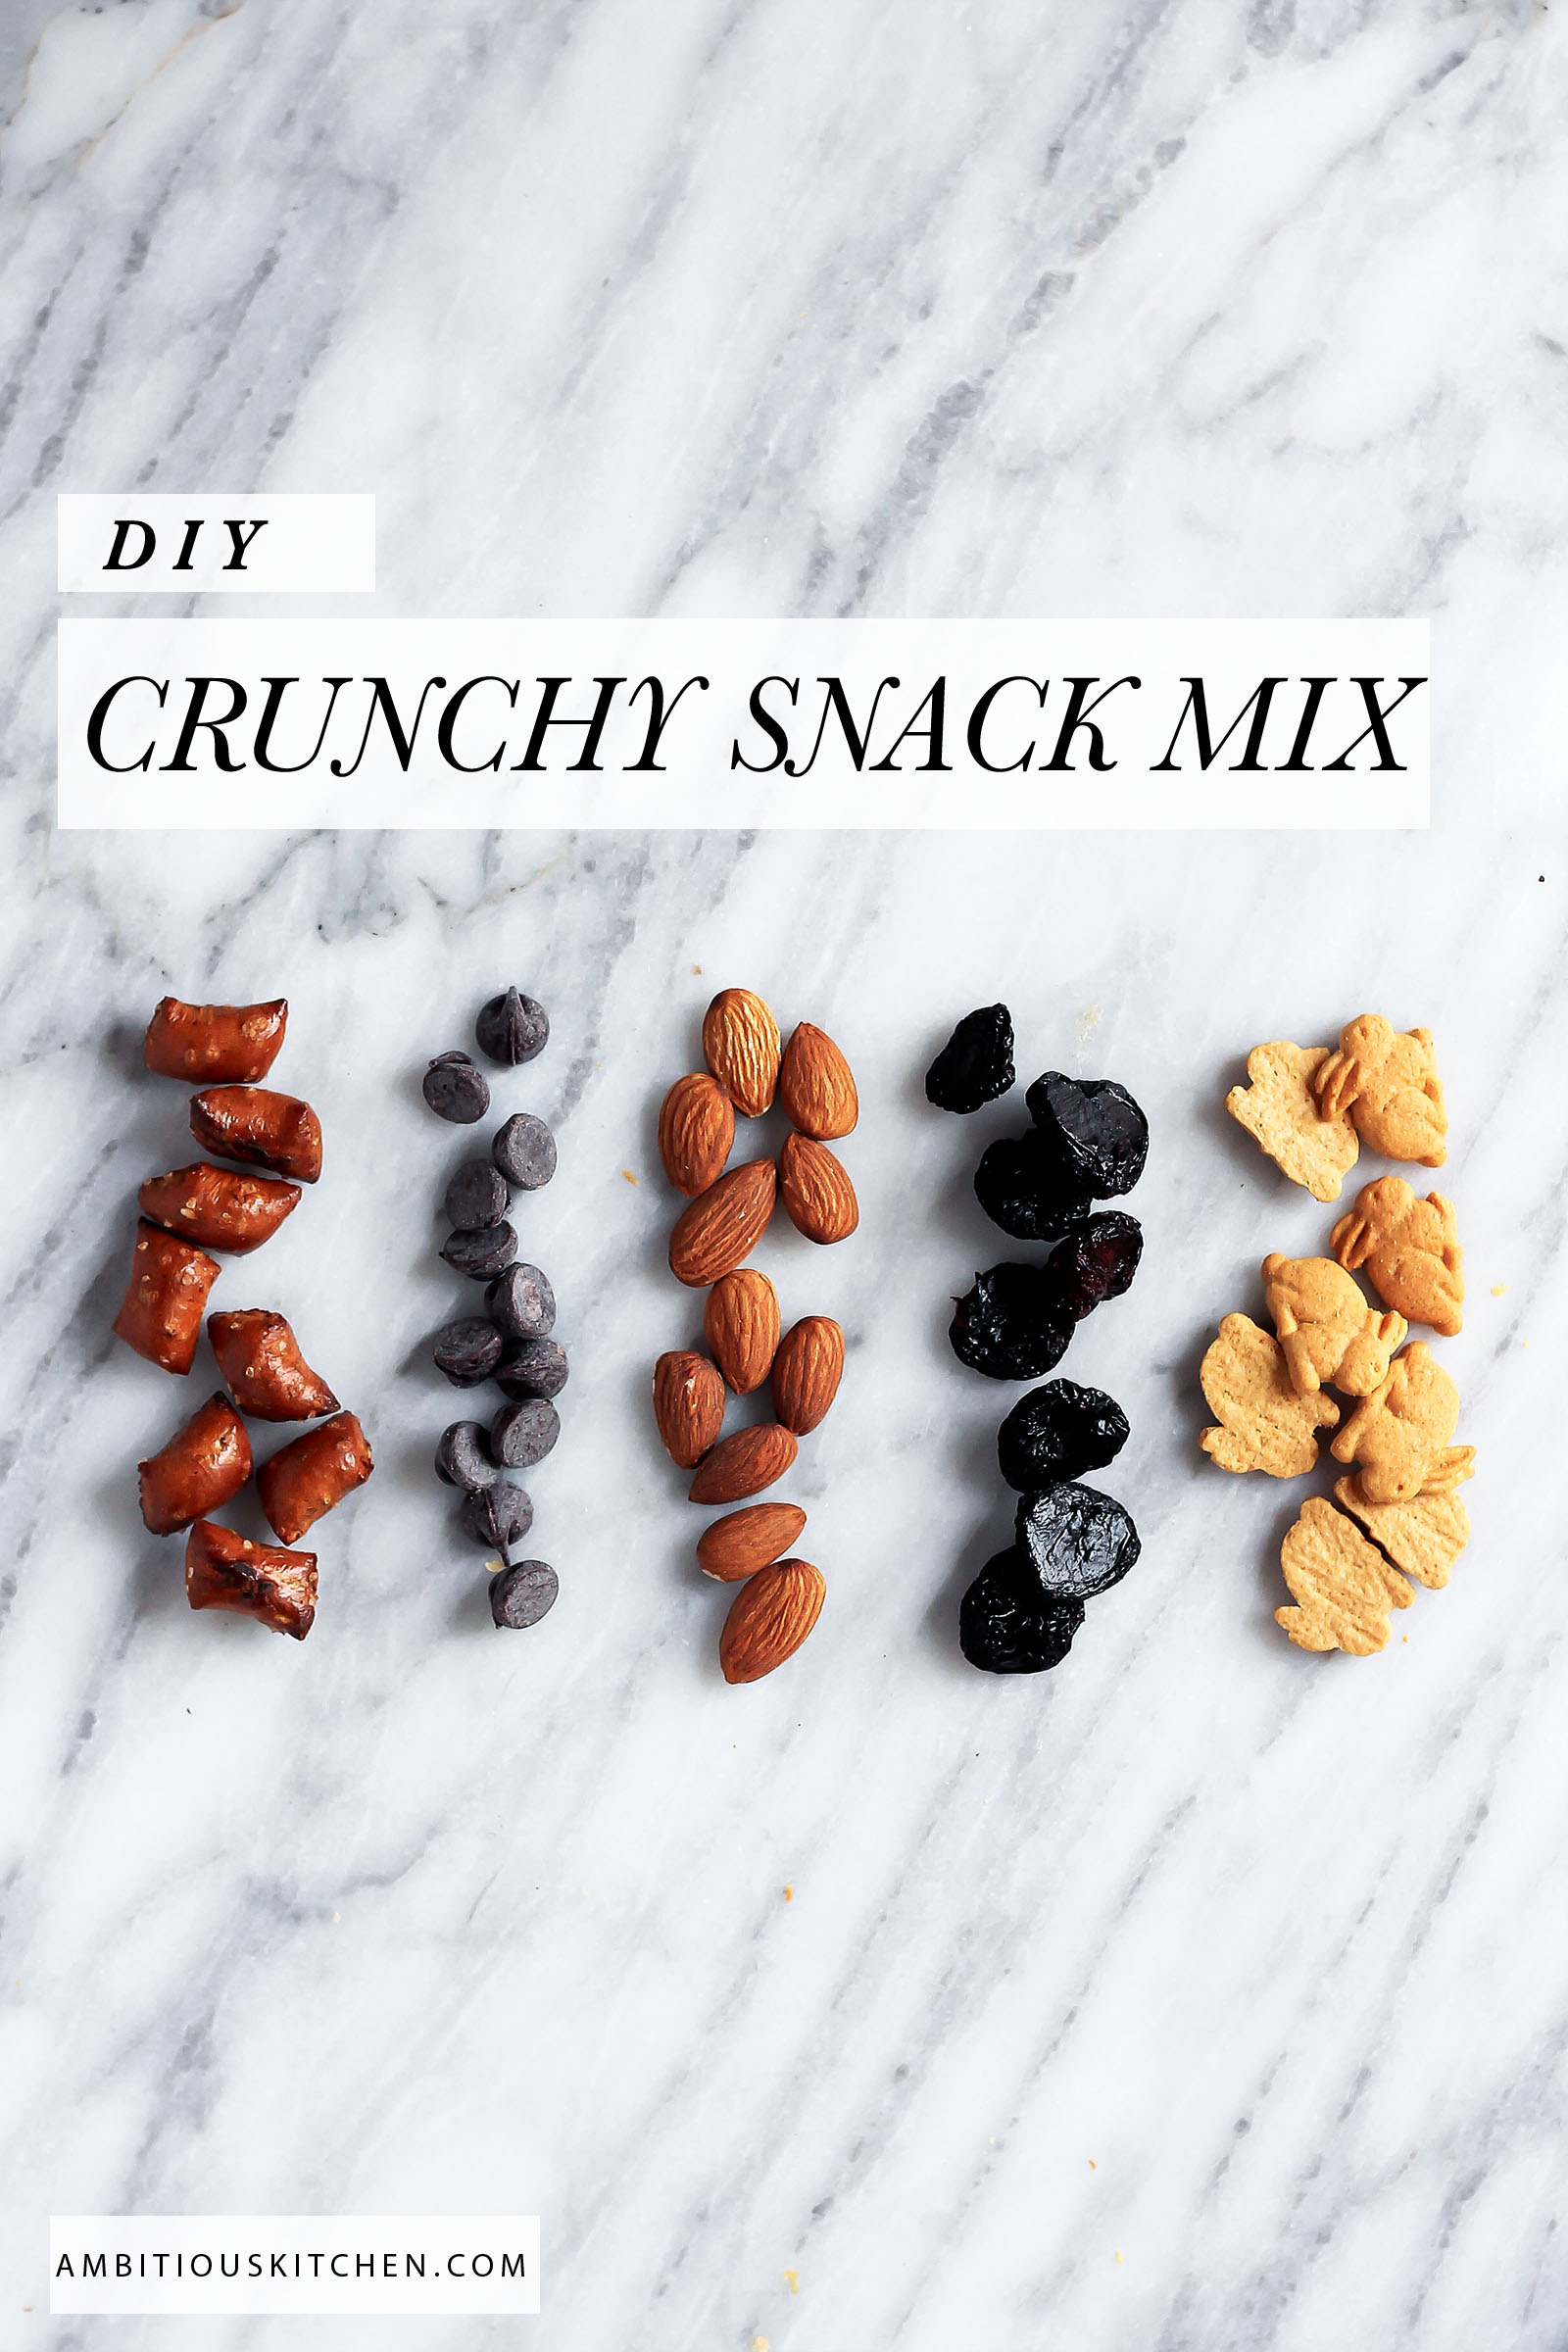 DIY CRUNCHY SWEET & SALTY MIX -- plus other healthy snack mixes to try & tips on snack portion control!